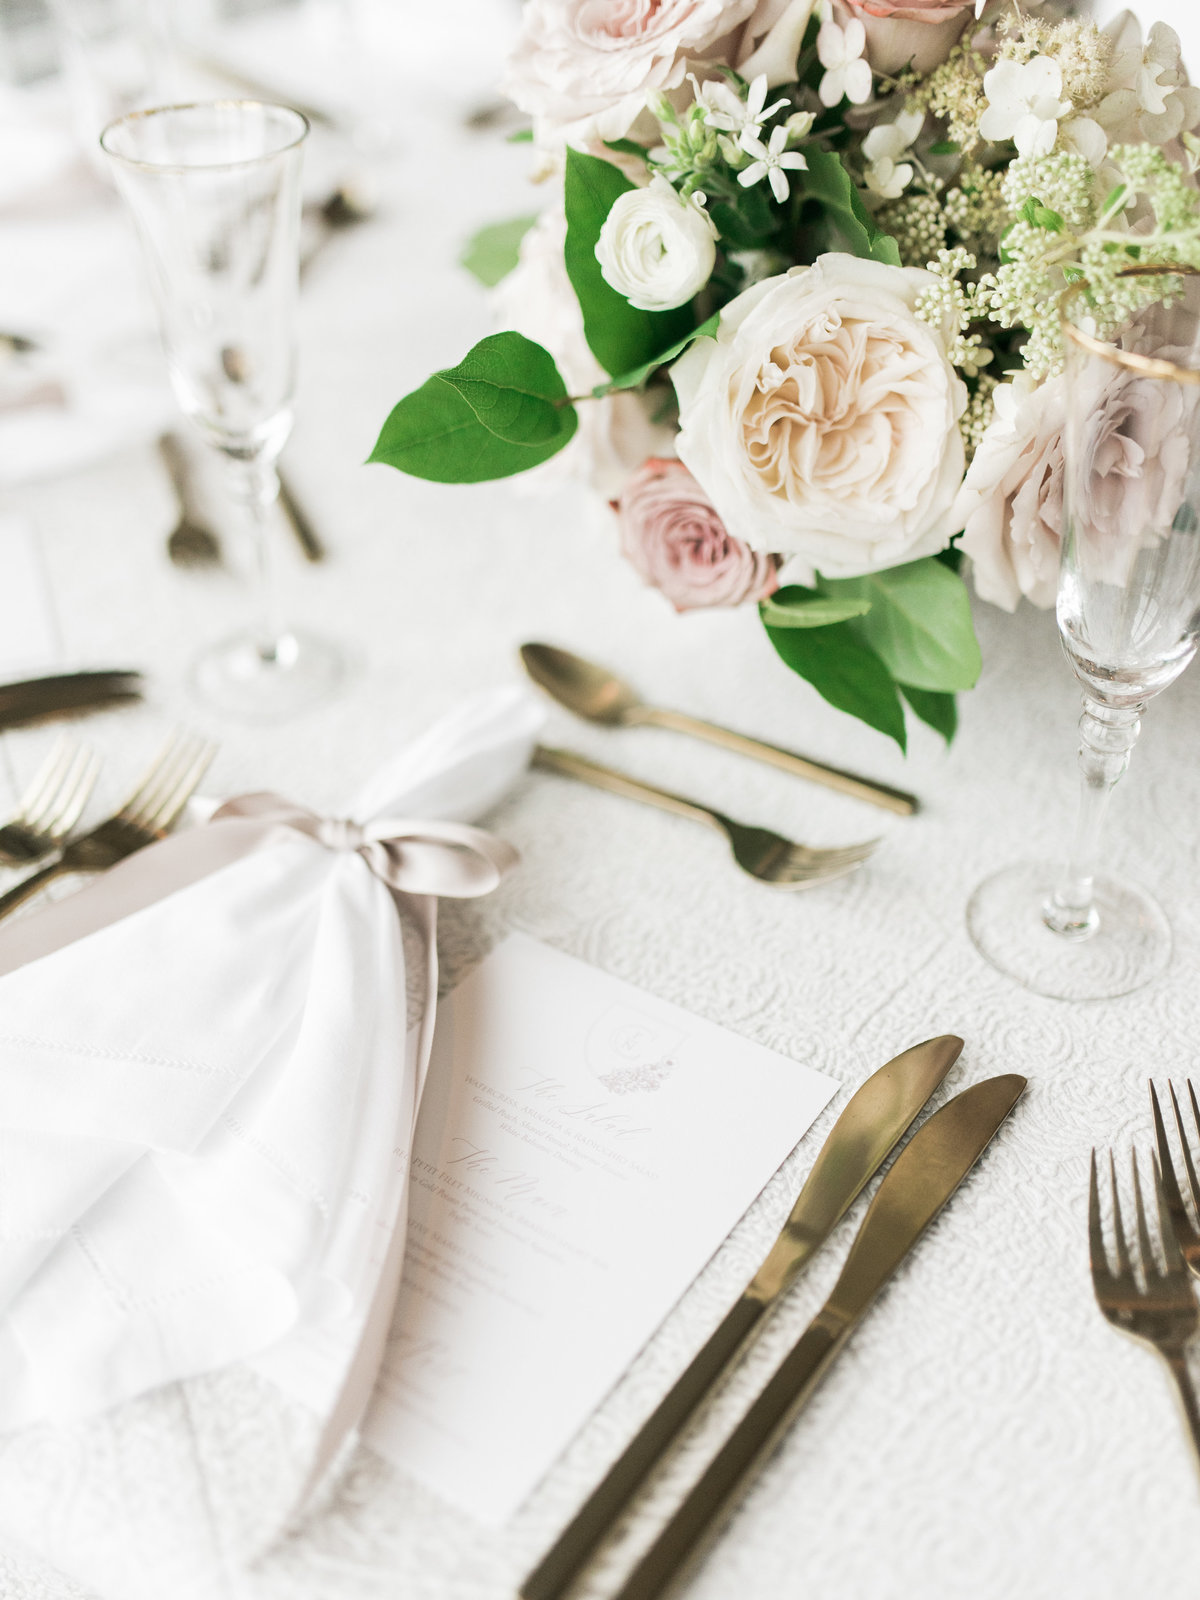 Romantic place setting with La Tavola linens and gold flatware by creative wedding planner and designer Always Yours Events